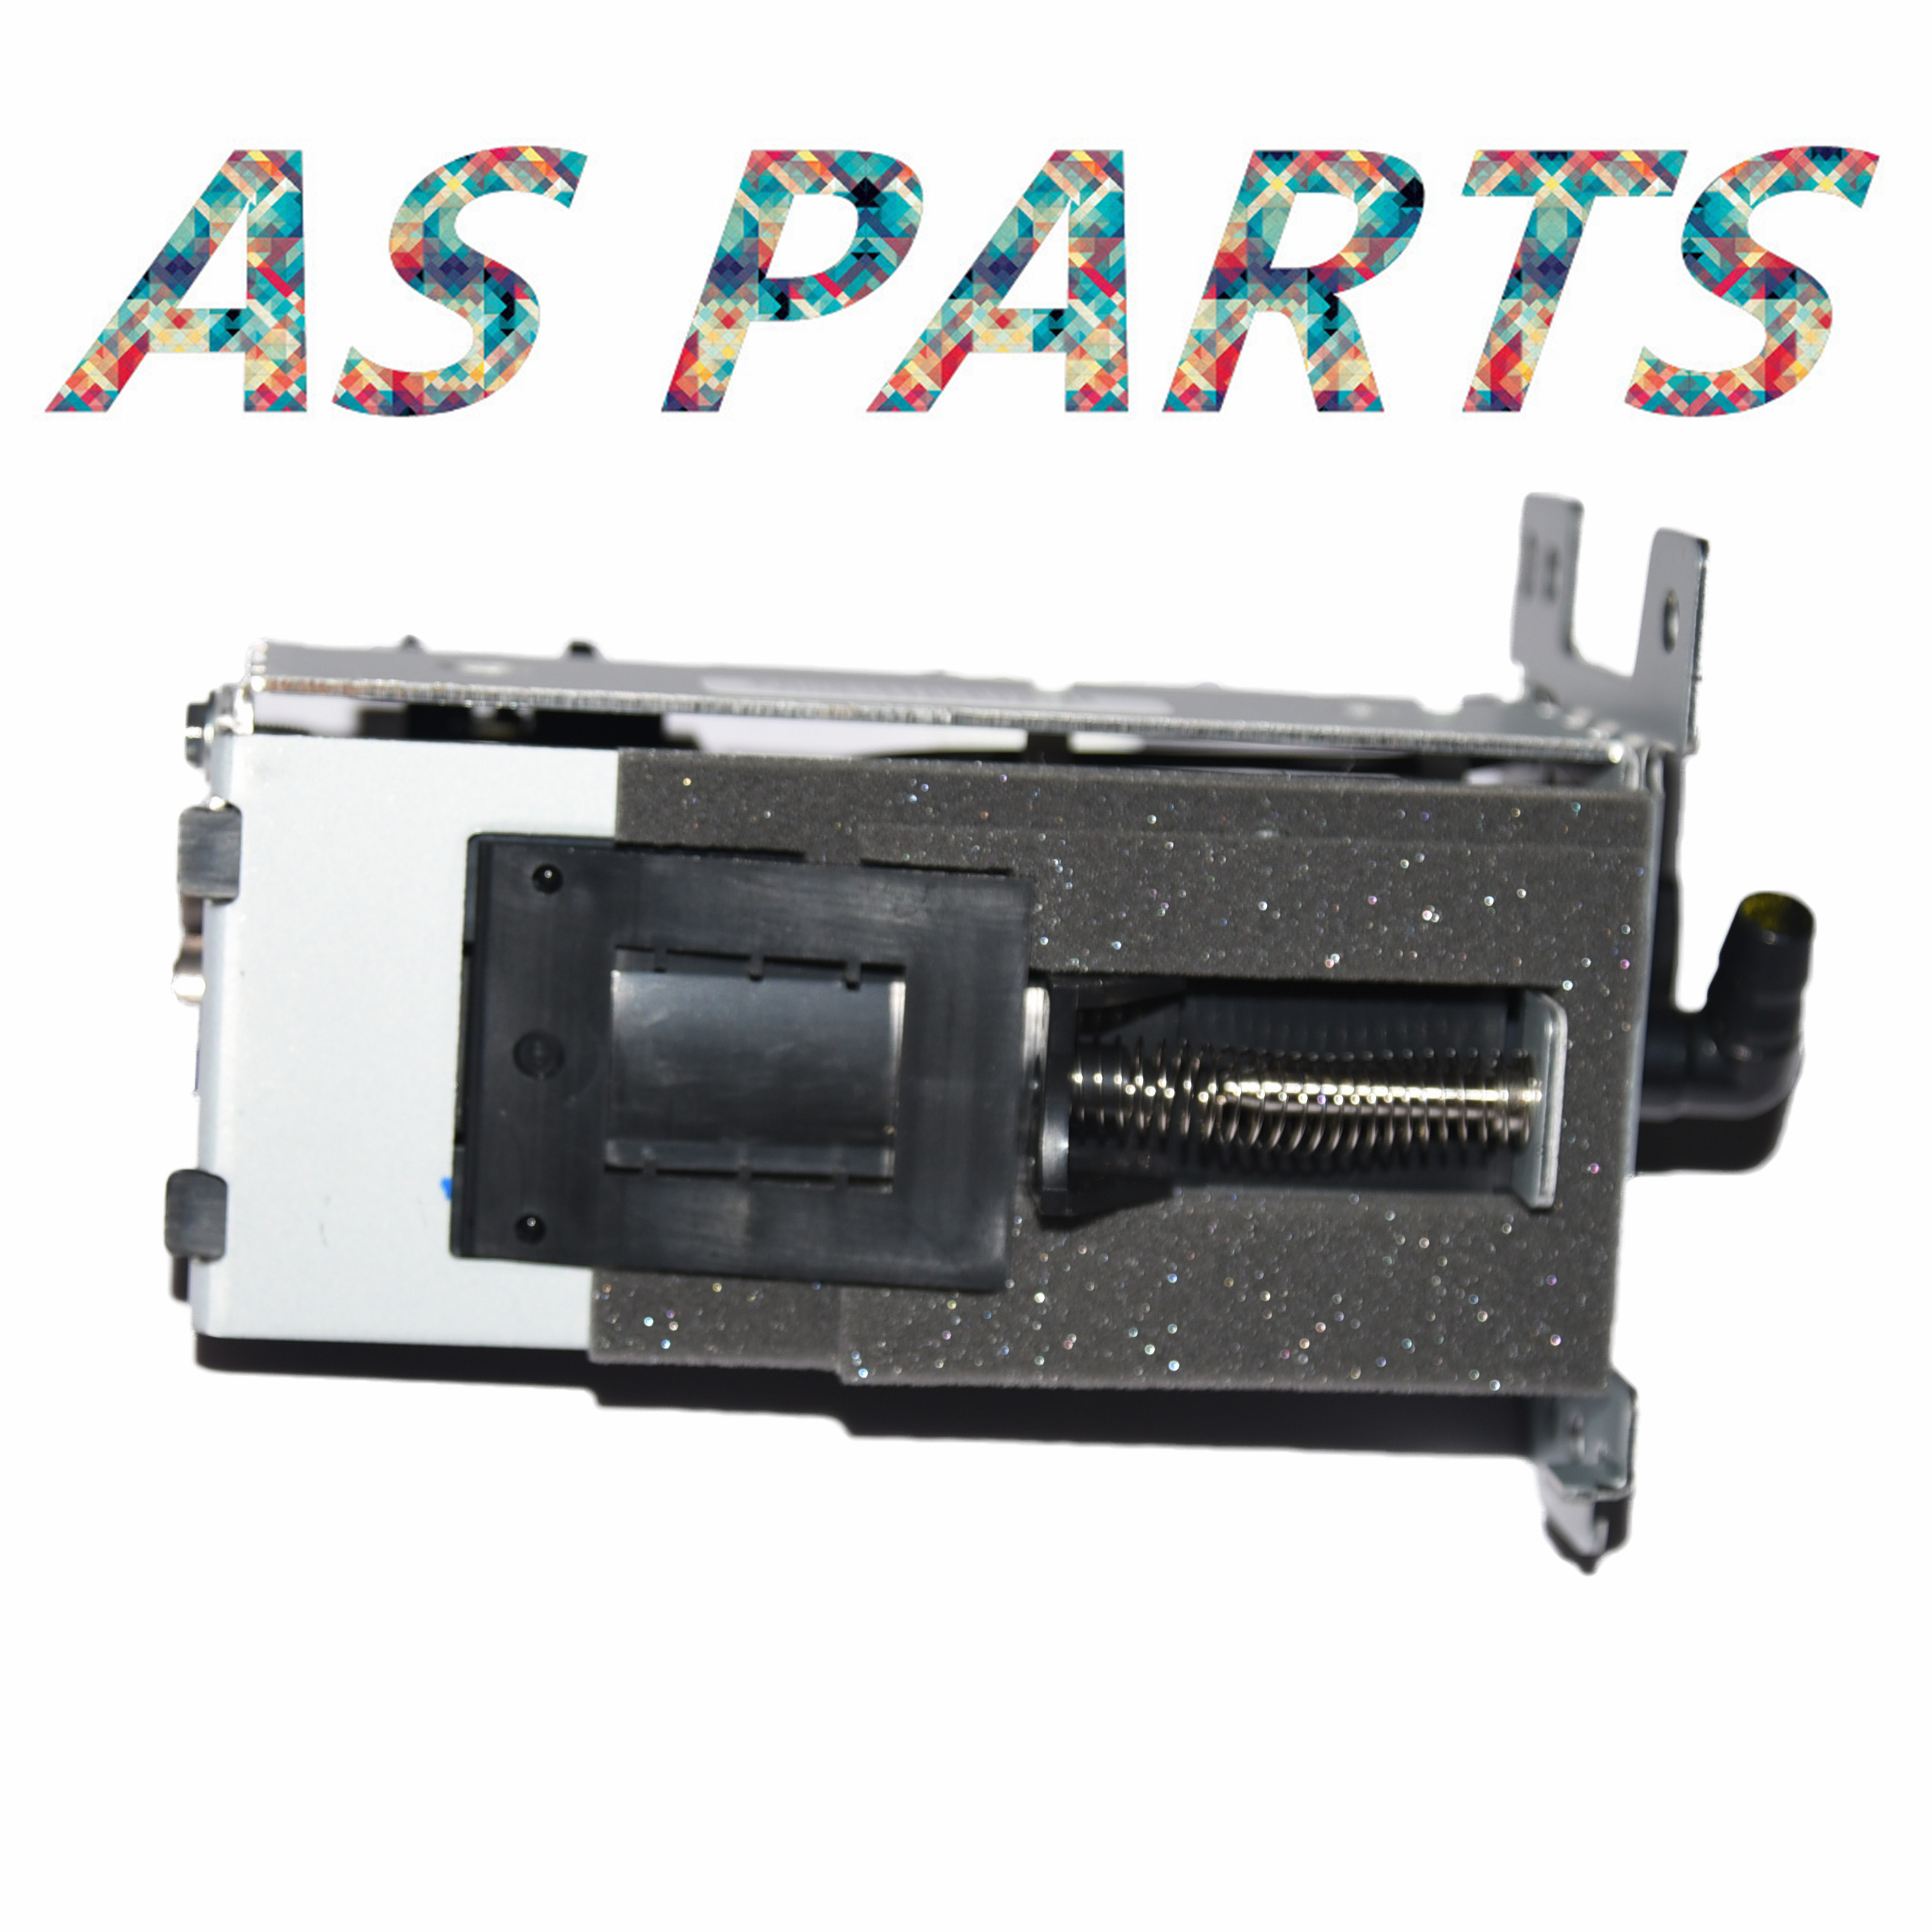 1* Genuine D059 3261 D059 3260 For Ricoh Aficio MP 1100 1350 9000 Pro 1107 1357 907 MP1100 MP1350 MP9000 Toner Pump Unit|Printer Parts|   - title=